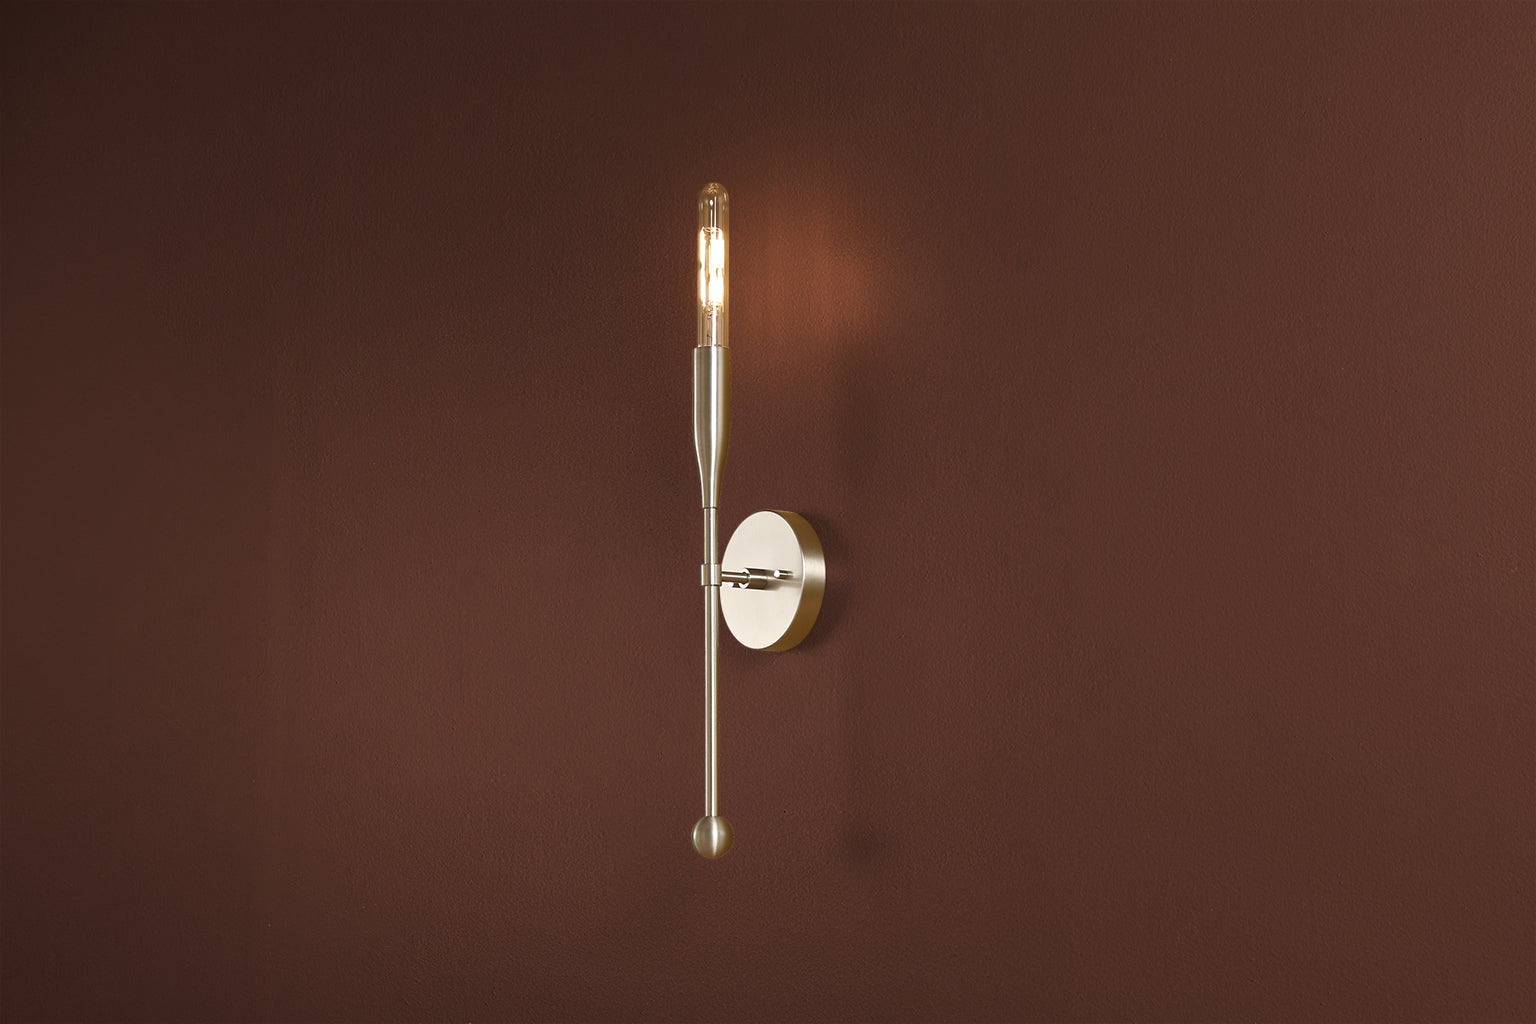 Sorenthia Sconce in Oil Rubbed Brass